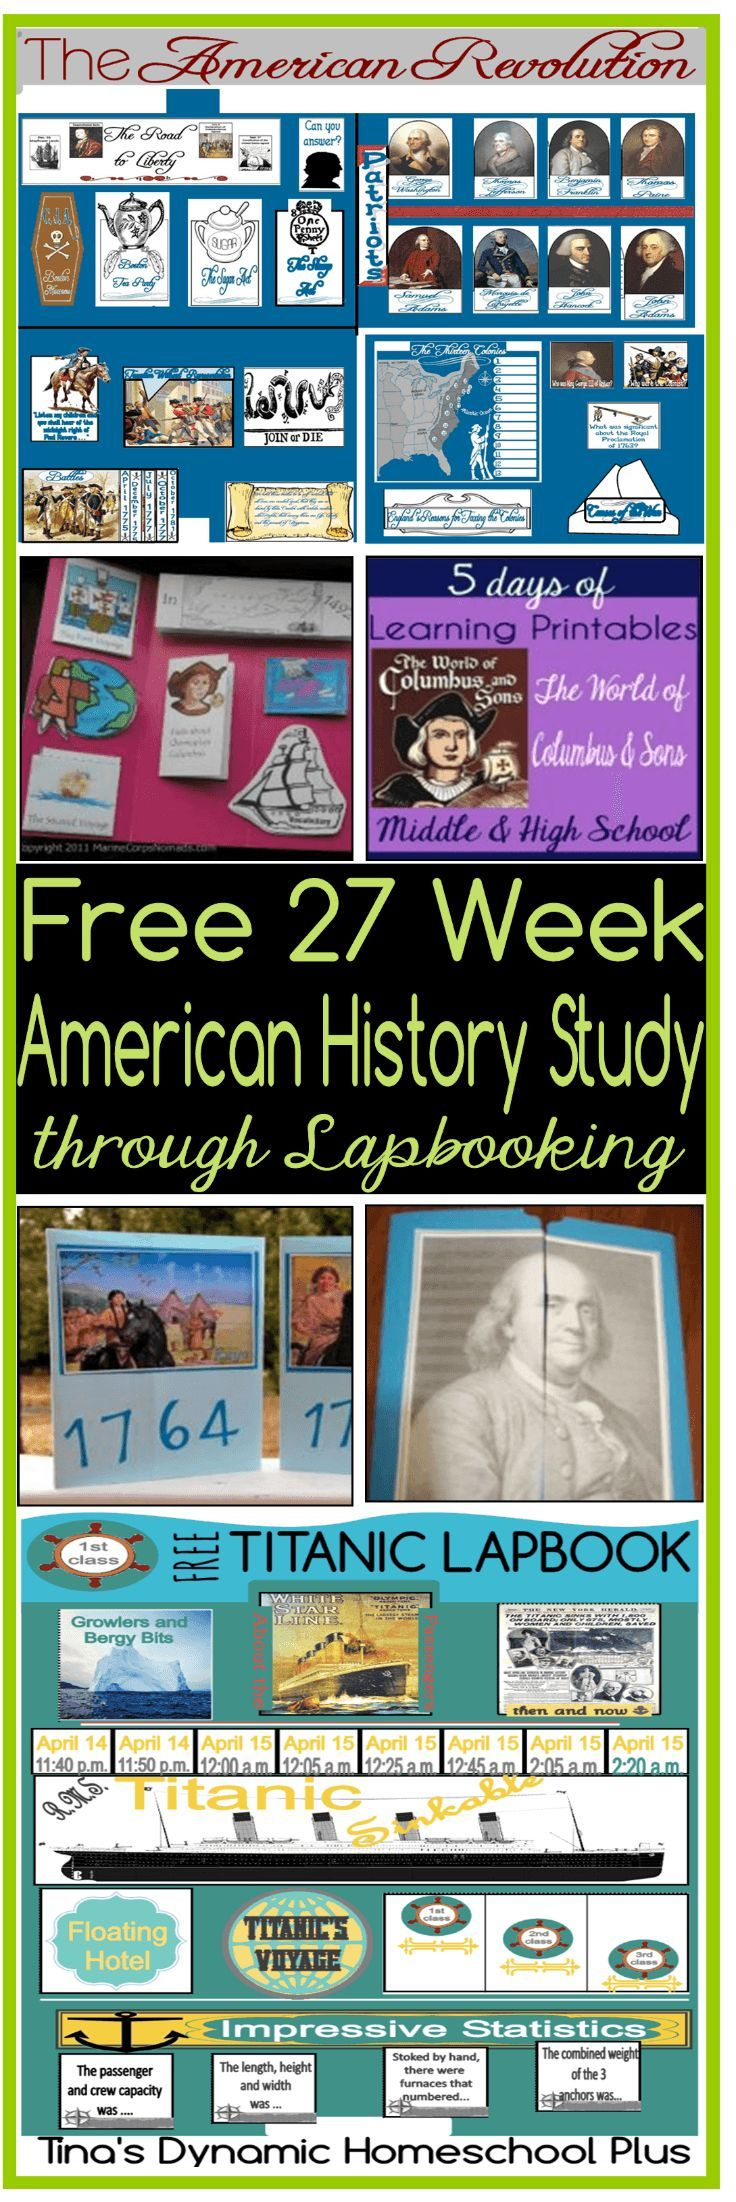 Free 27 Week American History Study through Lapbooking | Curriculums ...